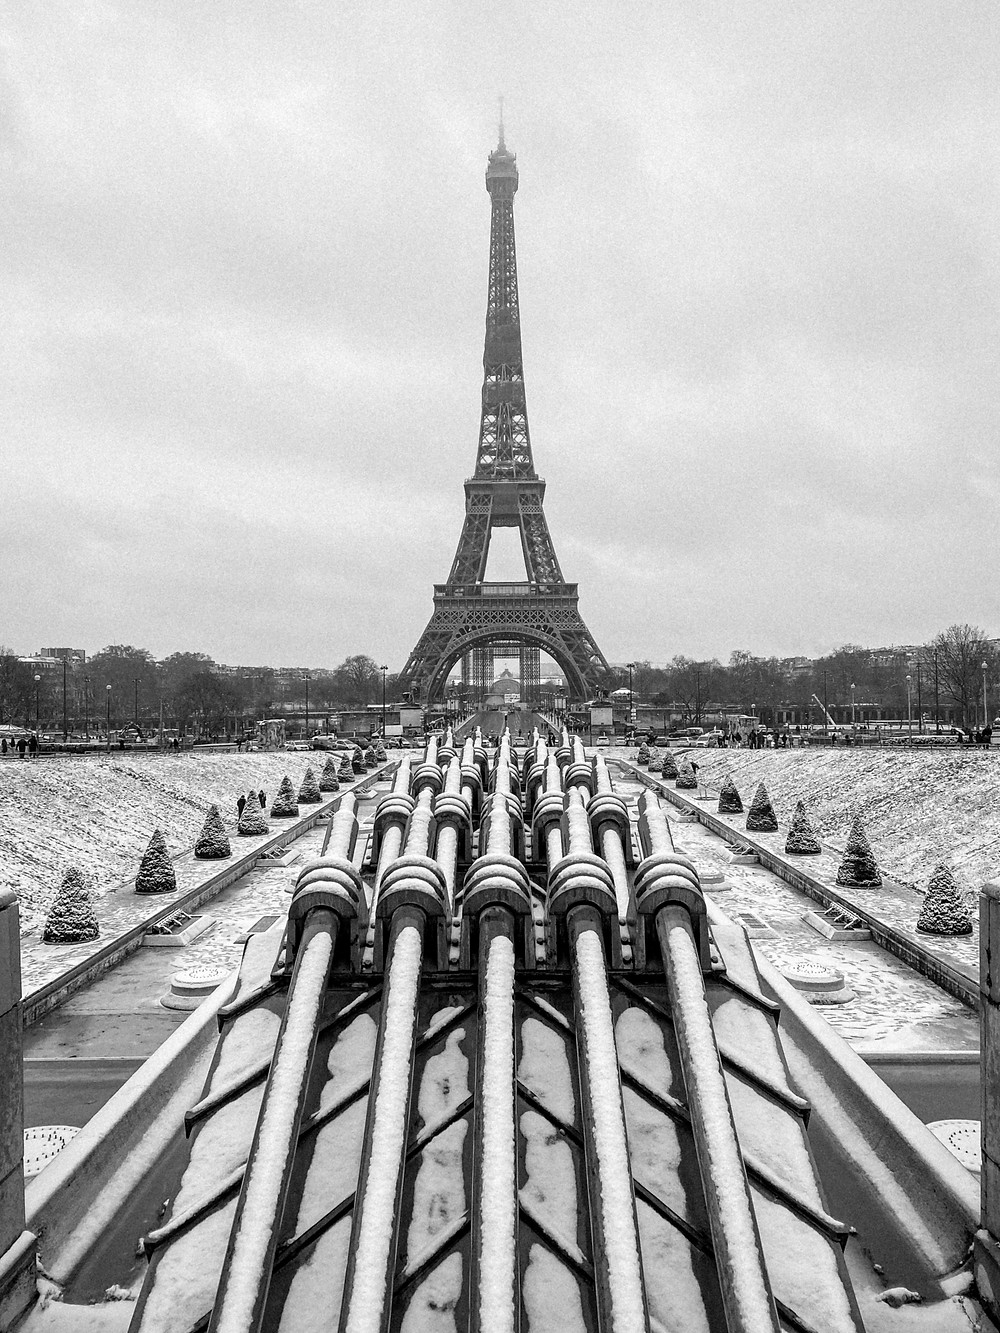 snow in paris eiffel tower black and white photo